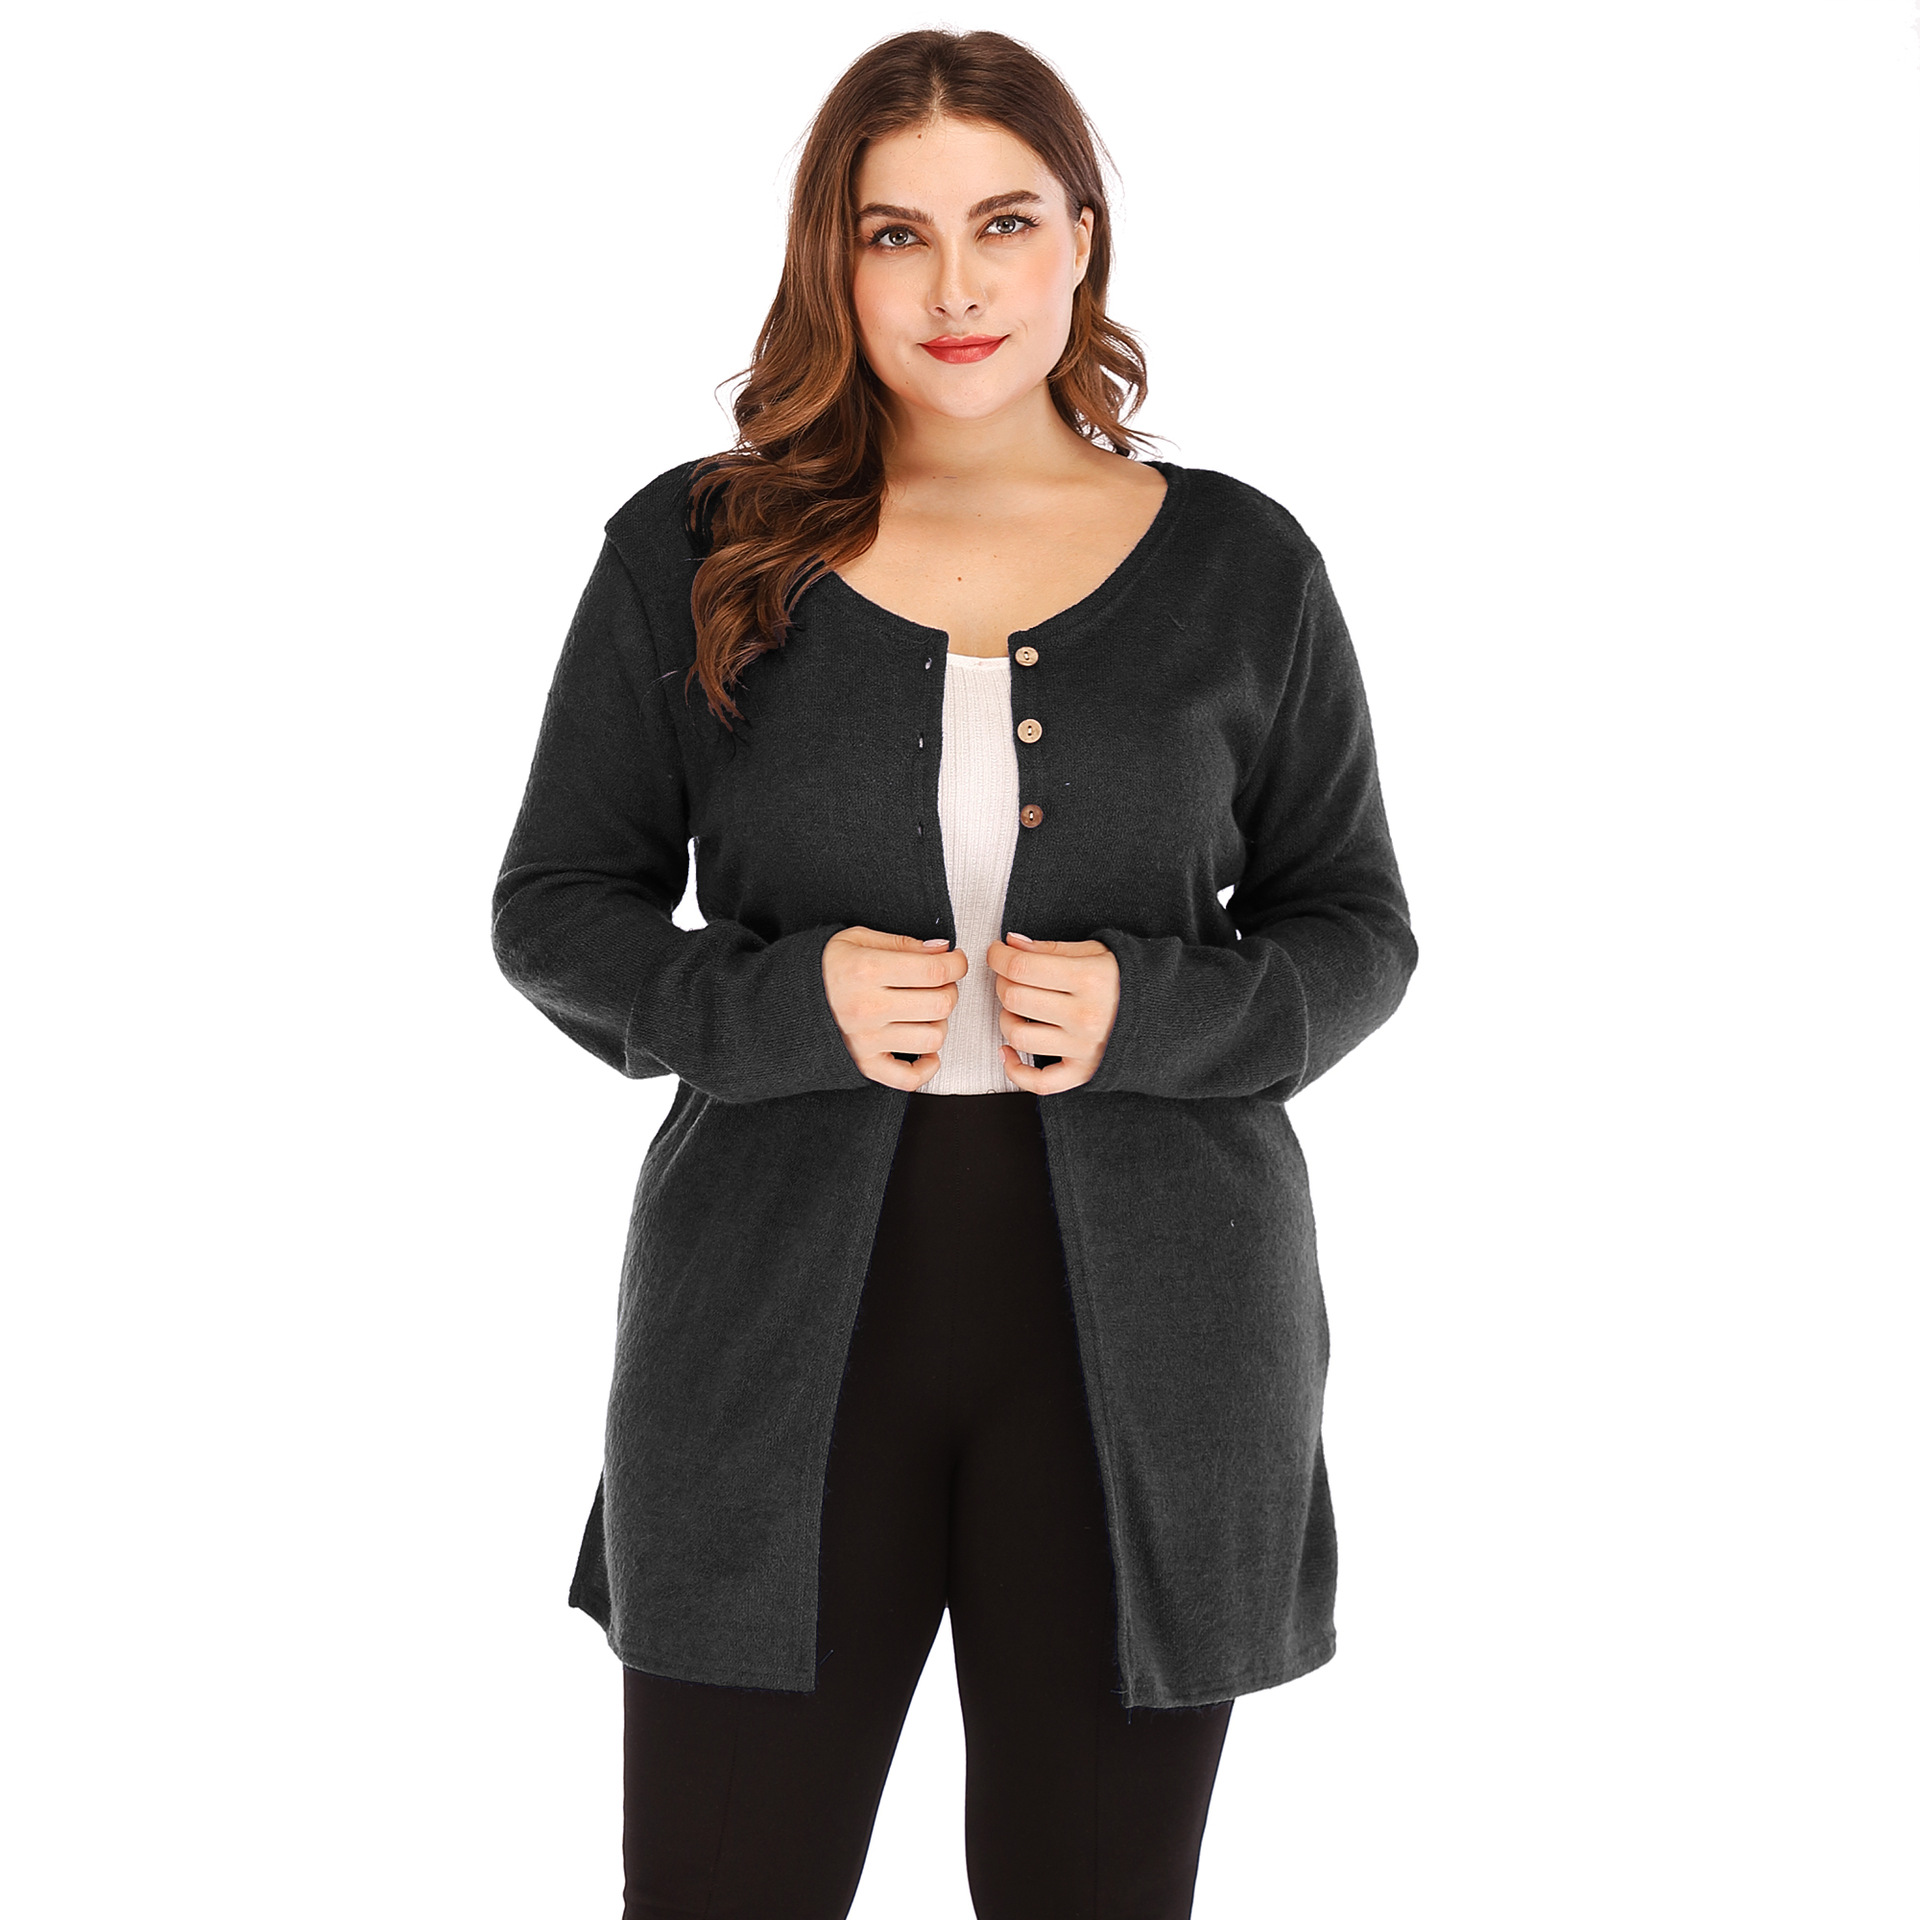 18ecdfd7d96 Women Cardigan Coat Autumn Long Sleeve Button Casual Basic Plus Size Jacket  Black on Luulla